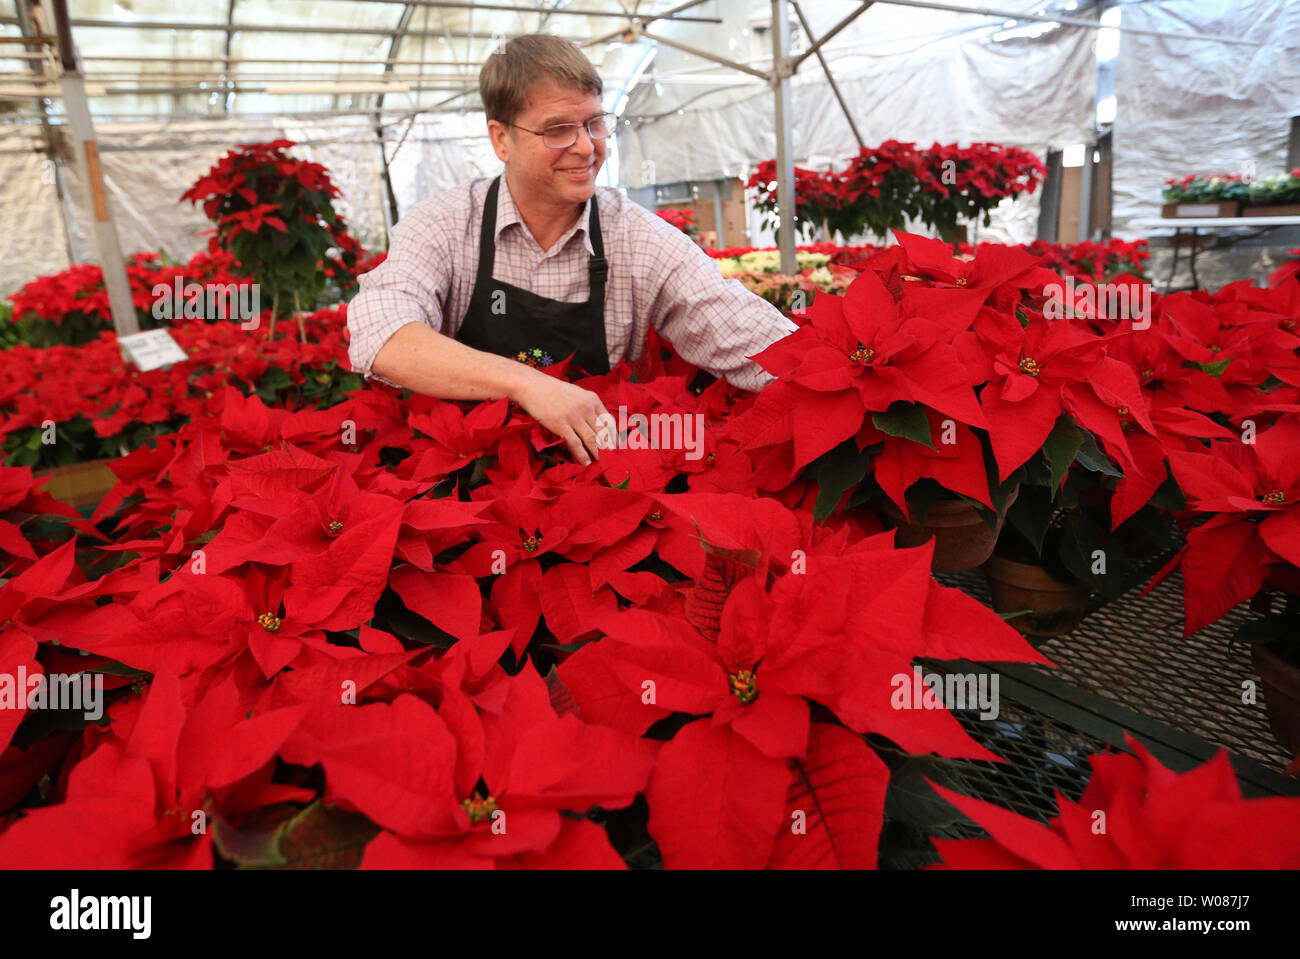 Florist Chuck Knoll Of Walter Knoll Florists Arrange Poinsettia Flowers On Poinsettia Day In St Louis On December 12 2018 Joel Roberts Poinsett Introduced The Poinsettia Plant To The United States From